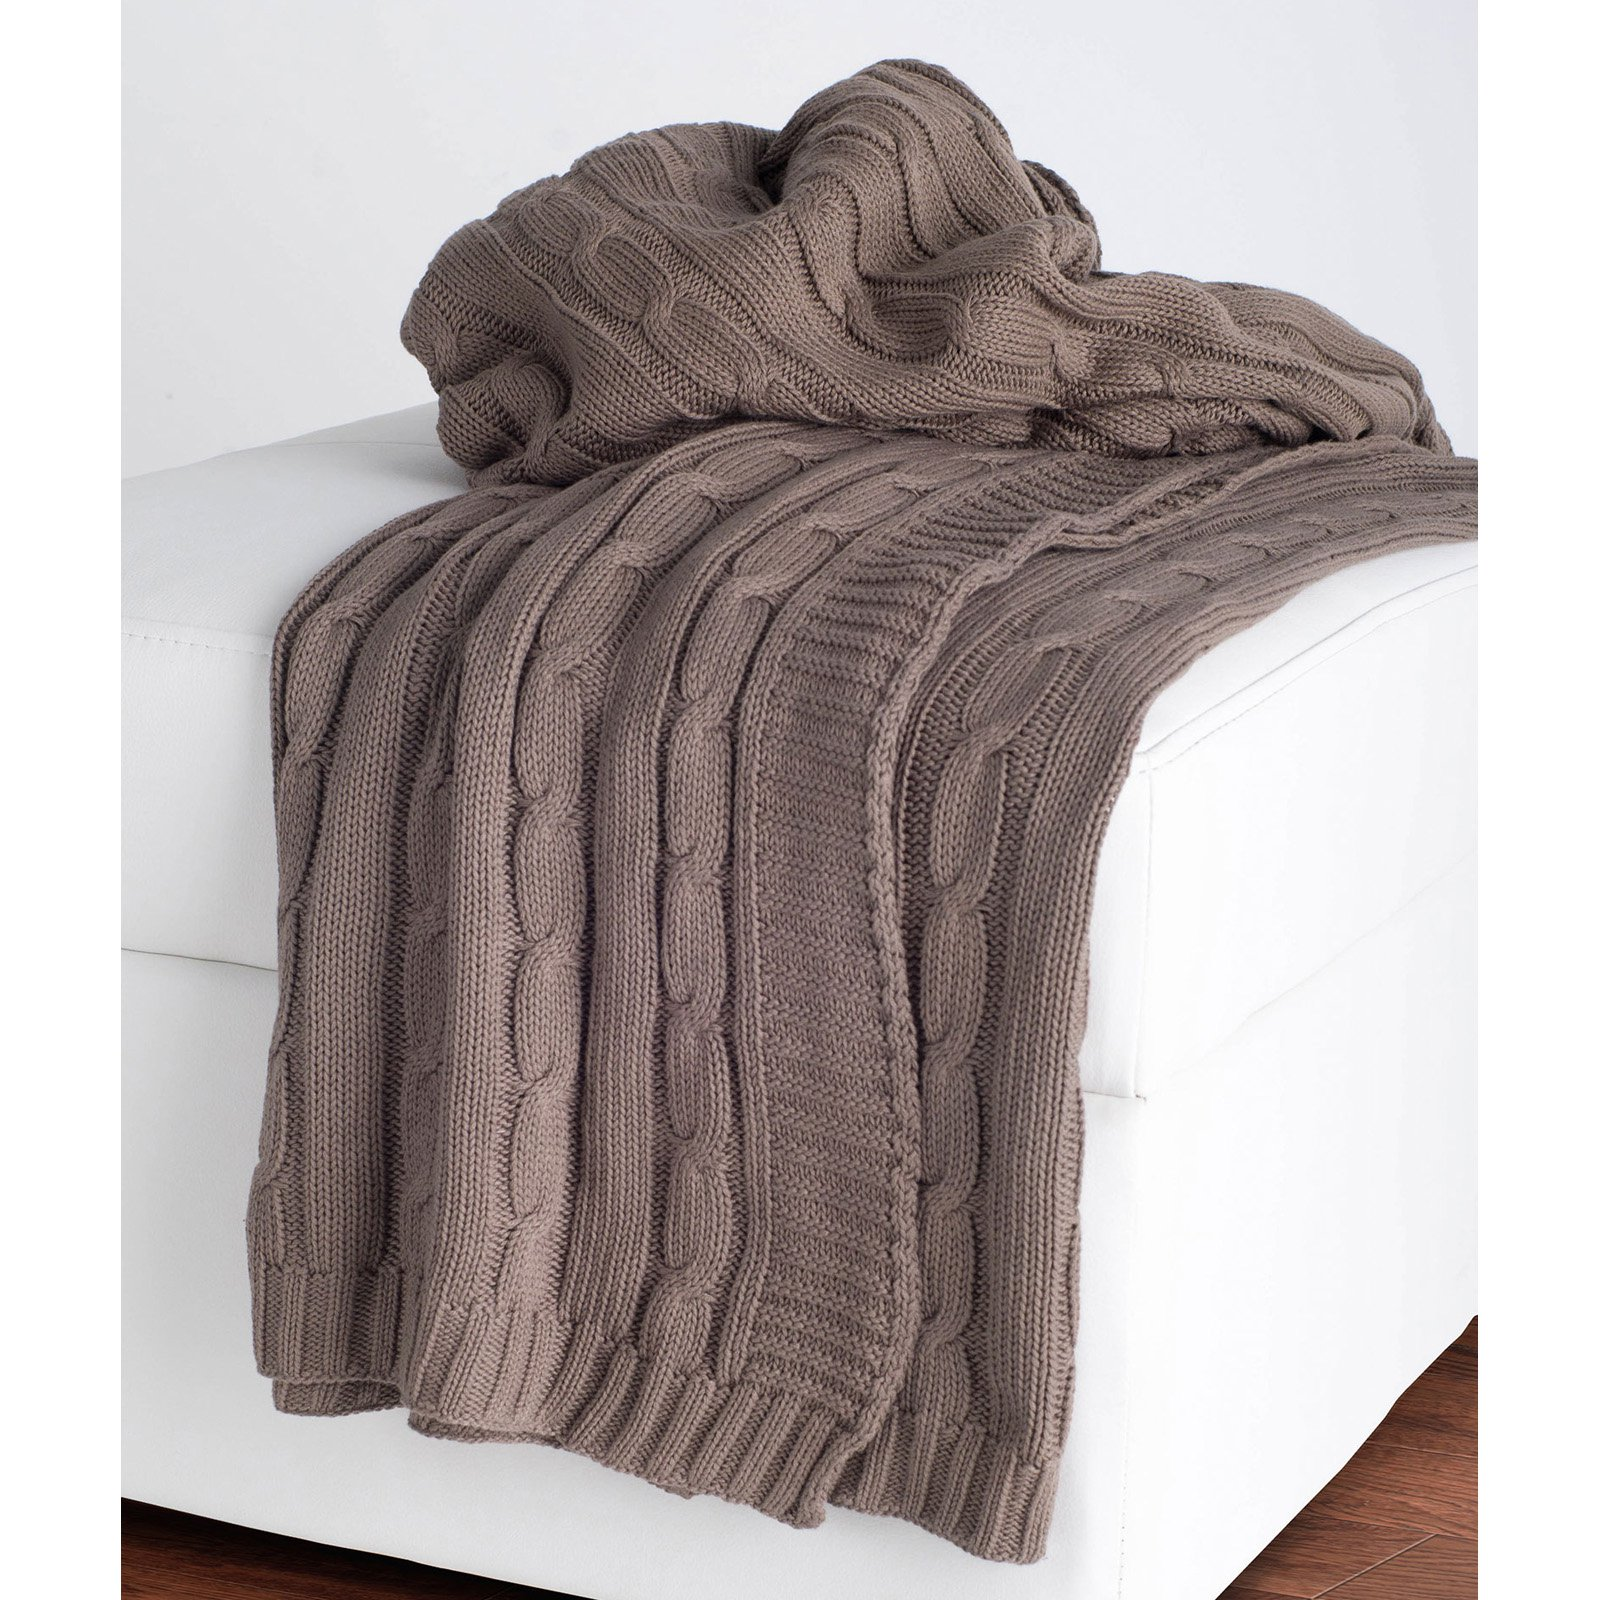 rizzy home cable knit cotton luxury sweater throw blanket walmartcom - Cable Knit Throw